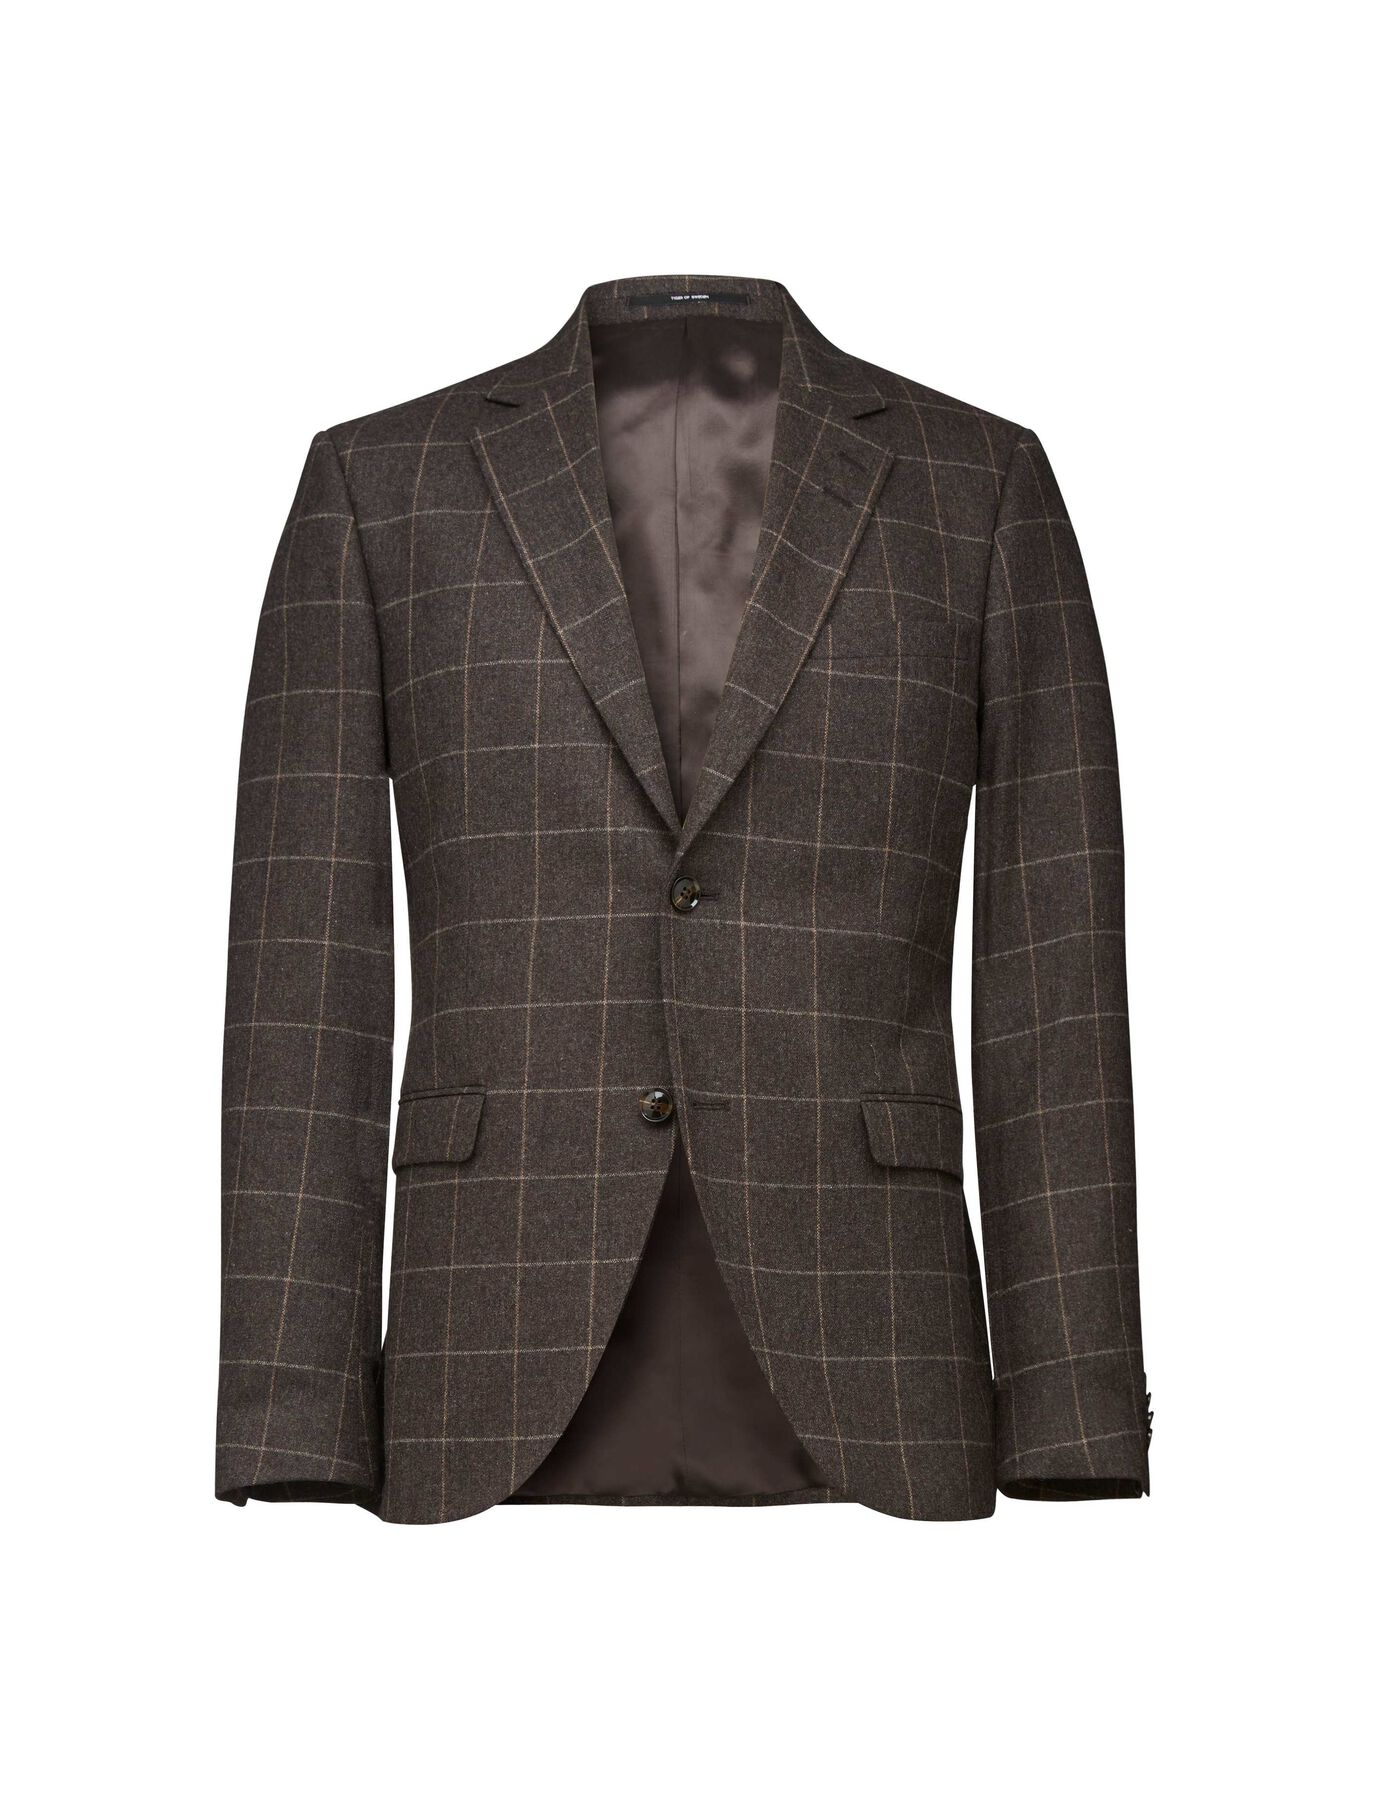 LAMONTE 3 BLAZER in Brown from Tiger of Sweden